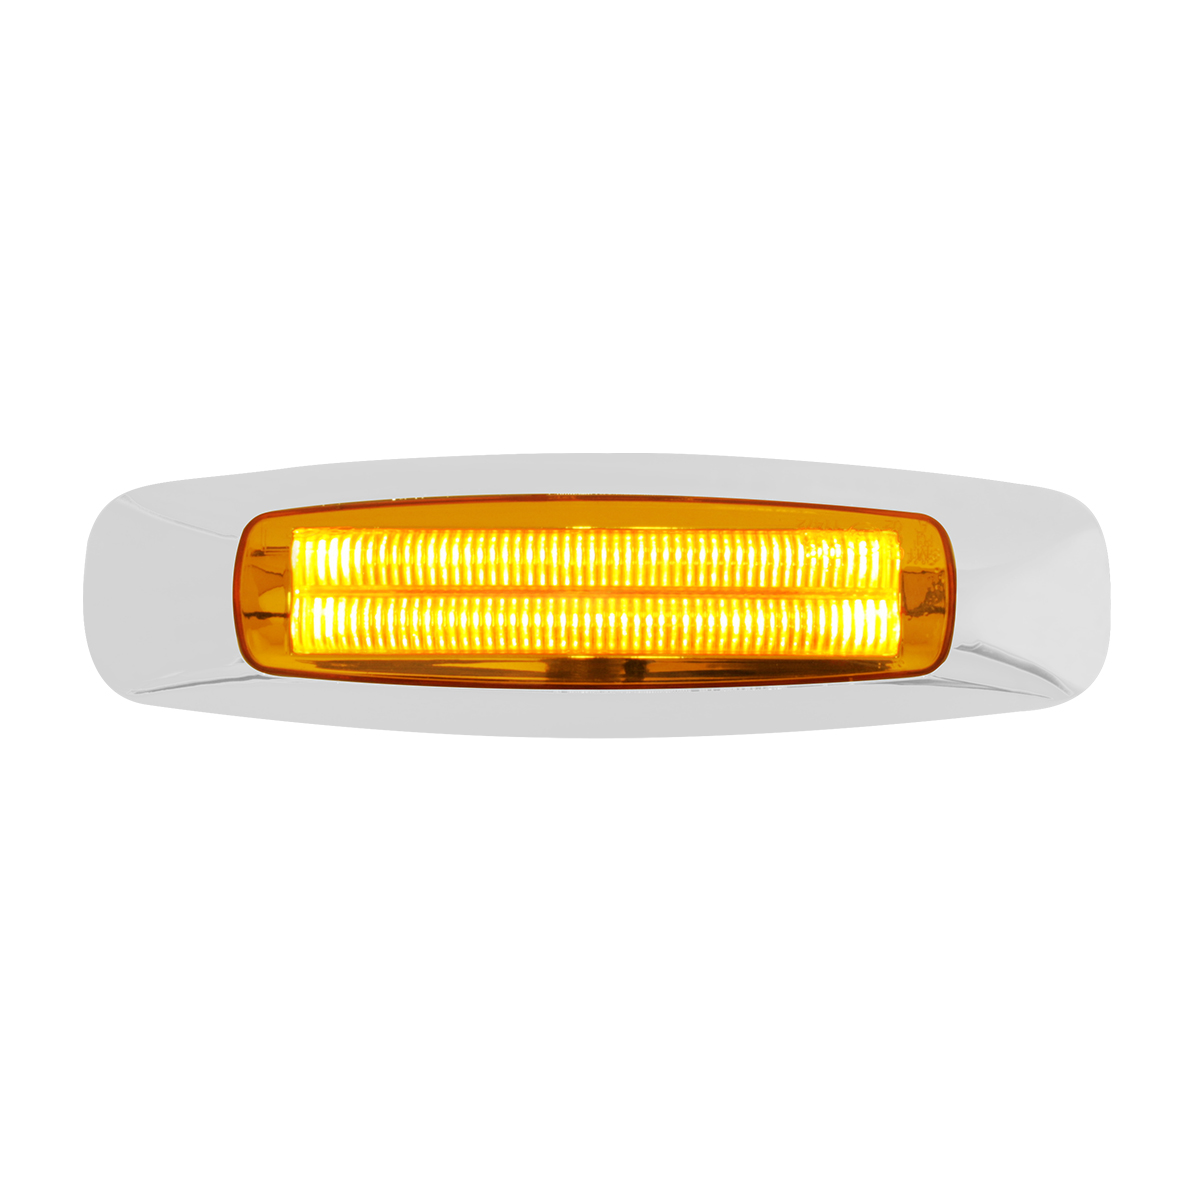 "74840 5-3/4"" Rectangular Prime LED Marker Light in Amber/Amber"